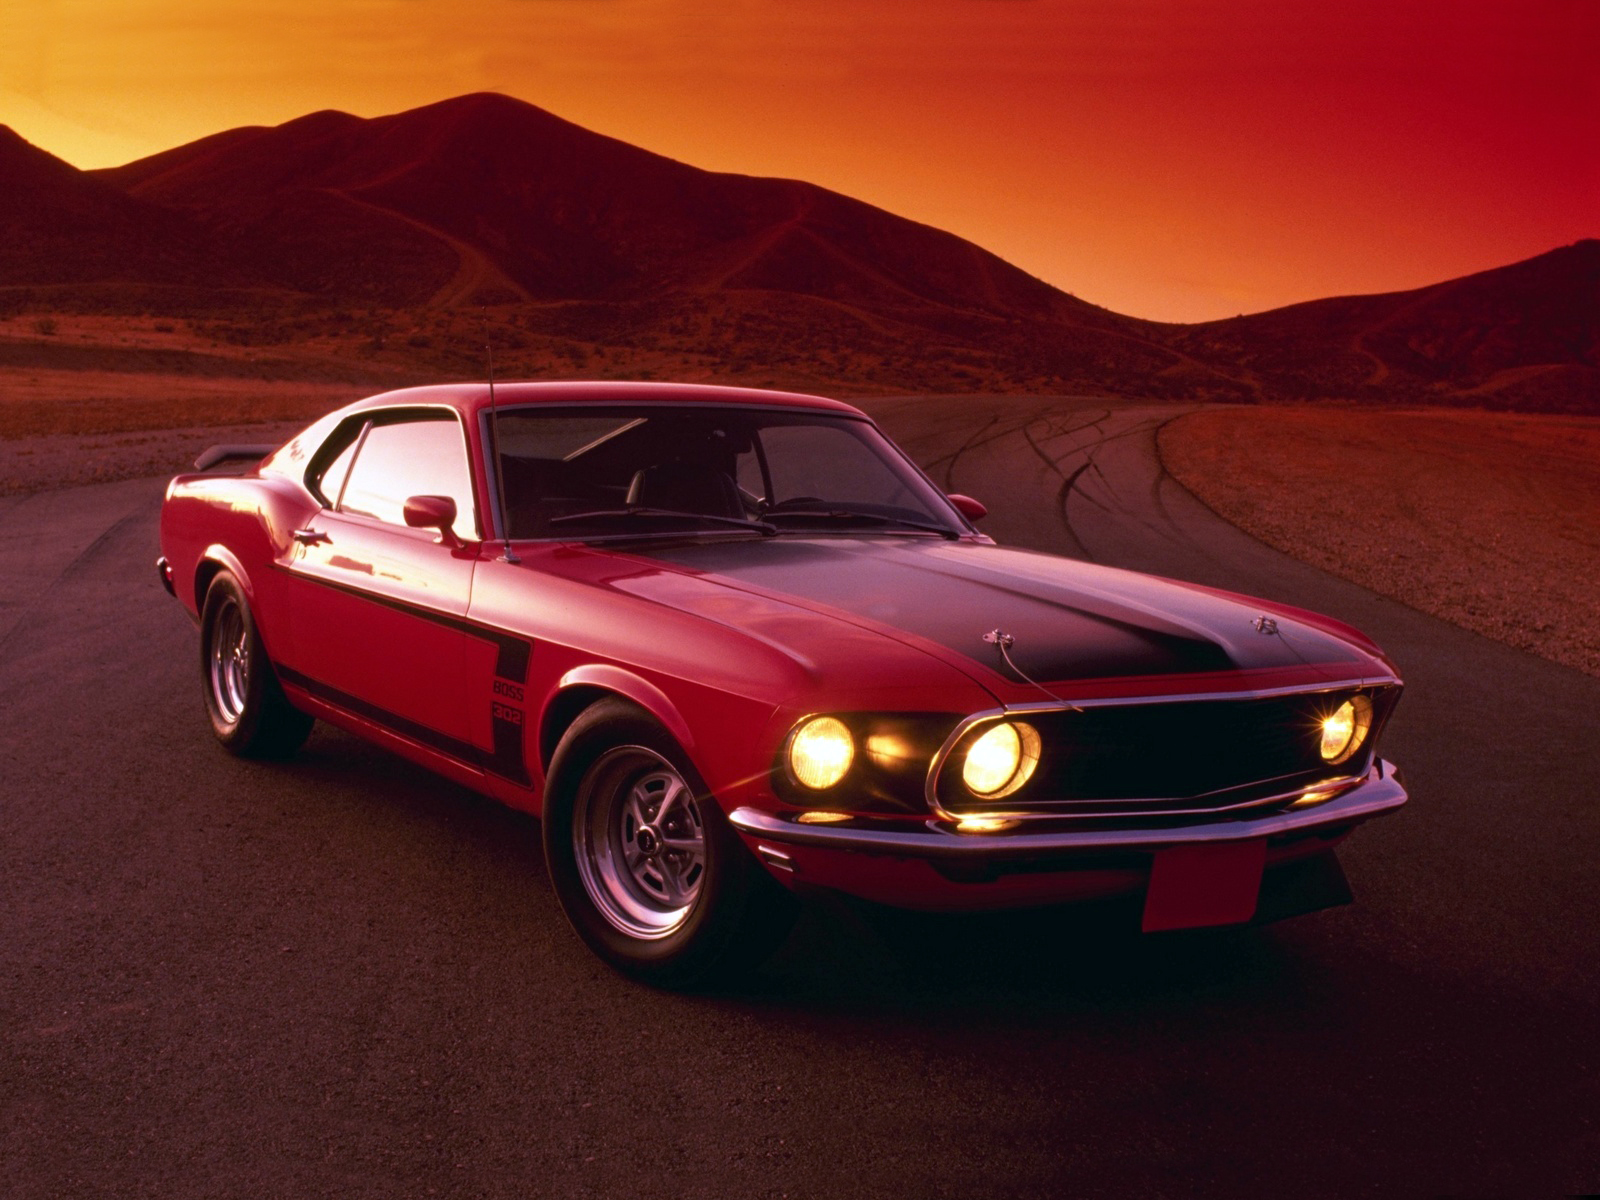 1600x1200 Wallpapers Ford Mustang Fastback Auto Erotica 1920 X 1200 1600x1200